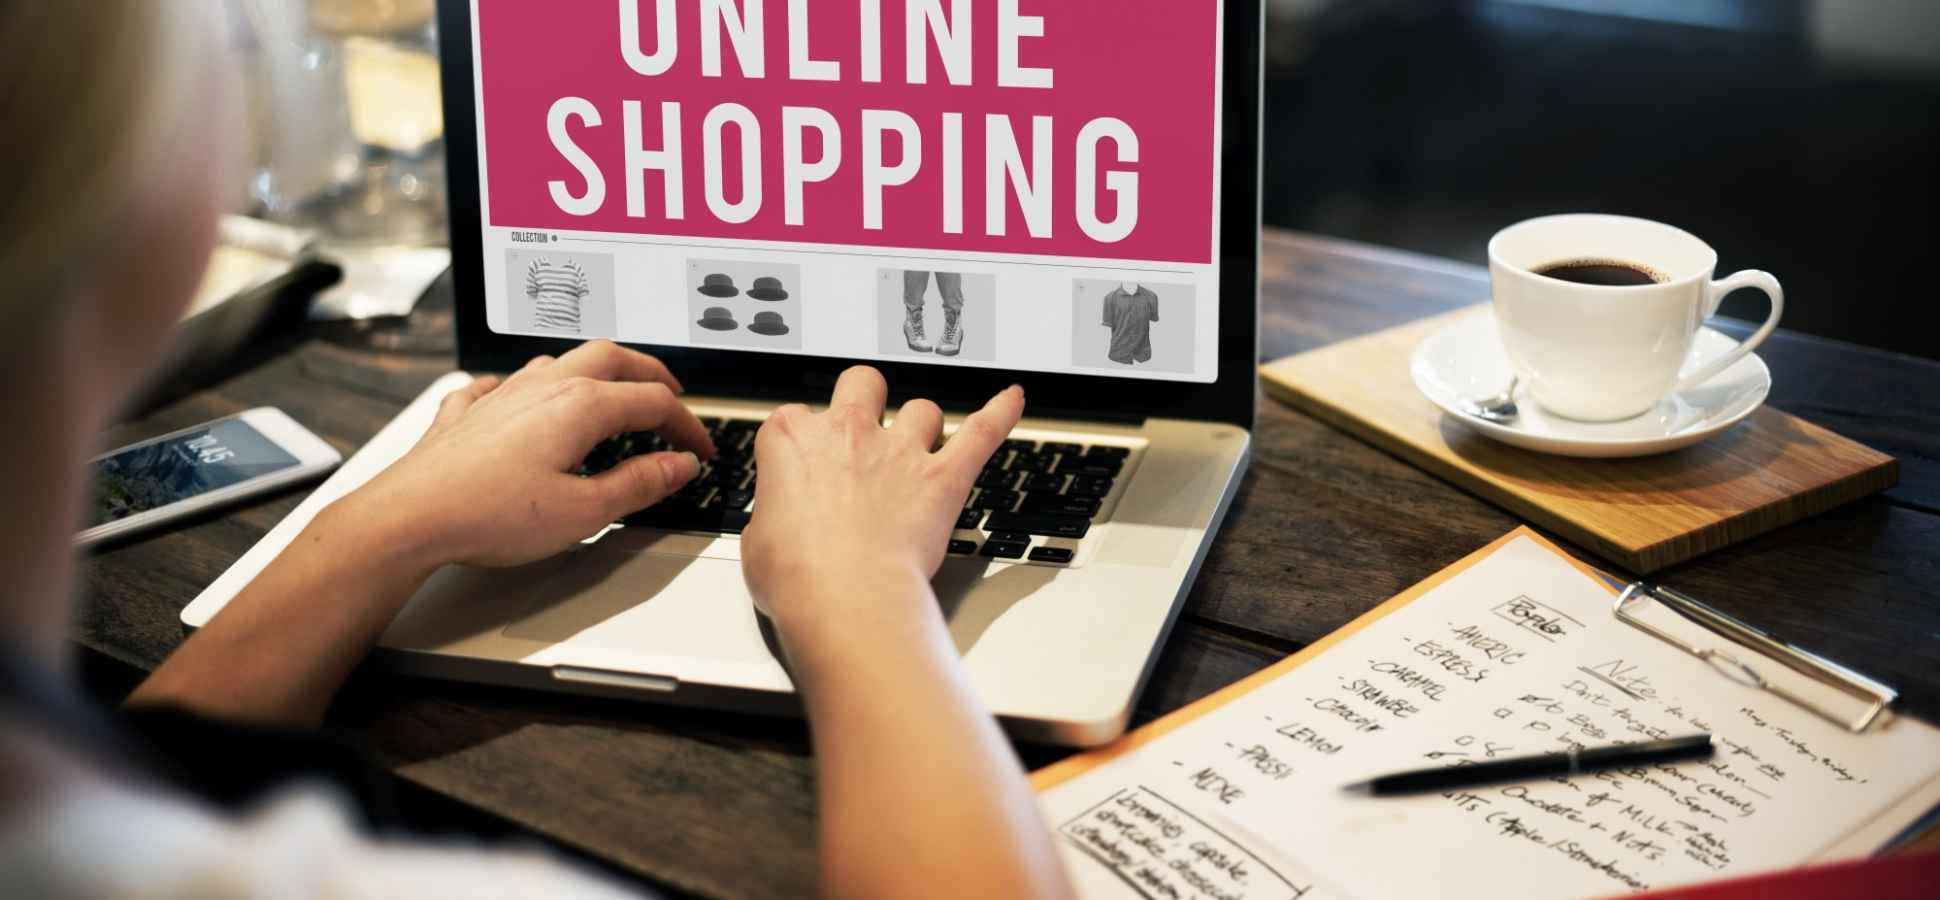 Have An Online Store? Use This 1 Simple Psychological Trick To Sell More